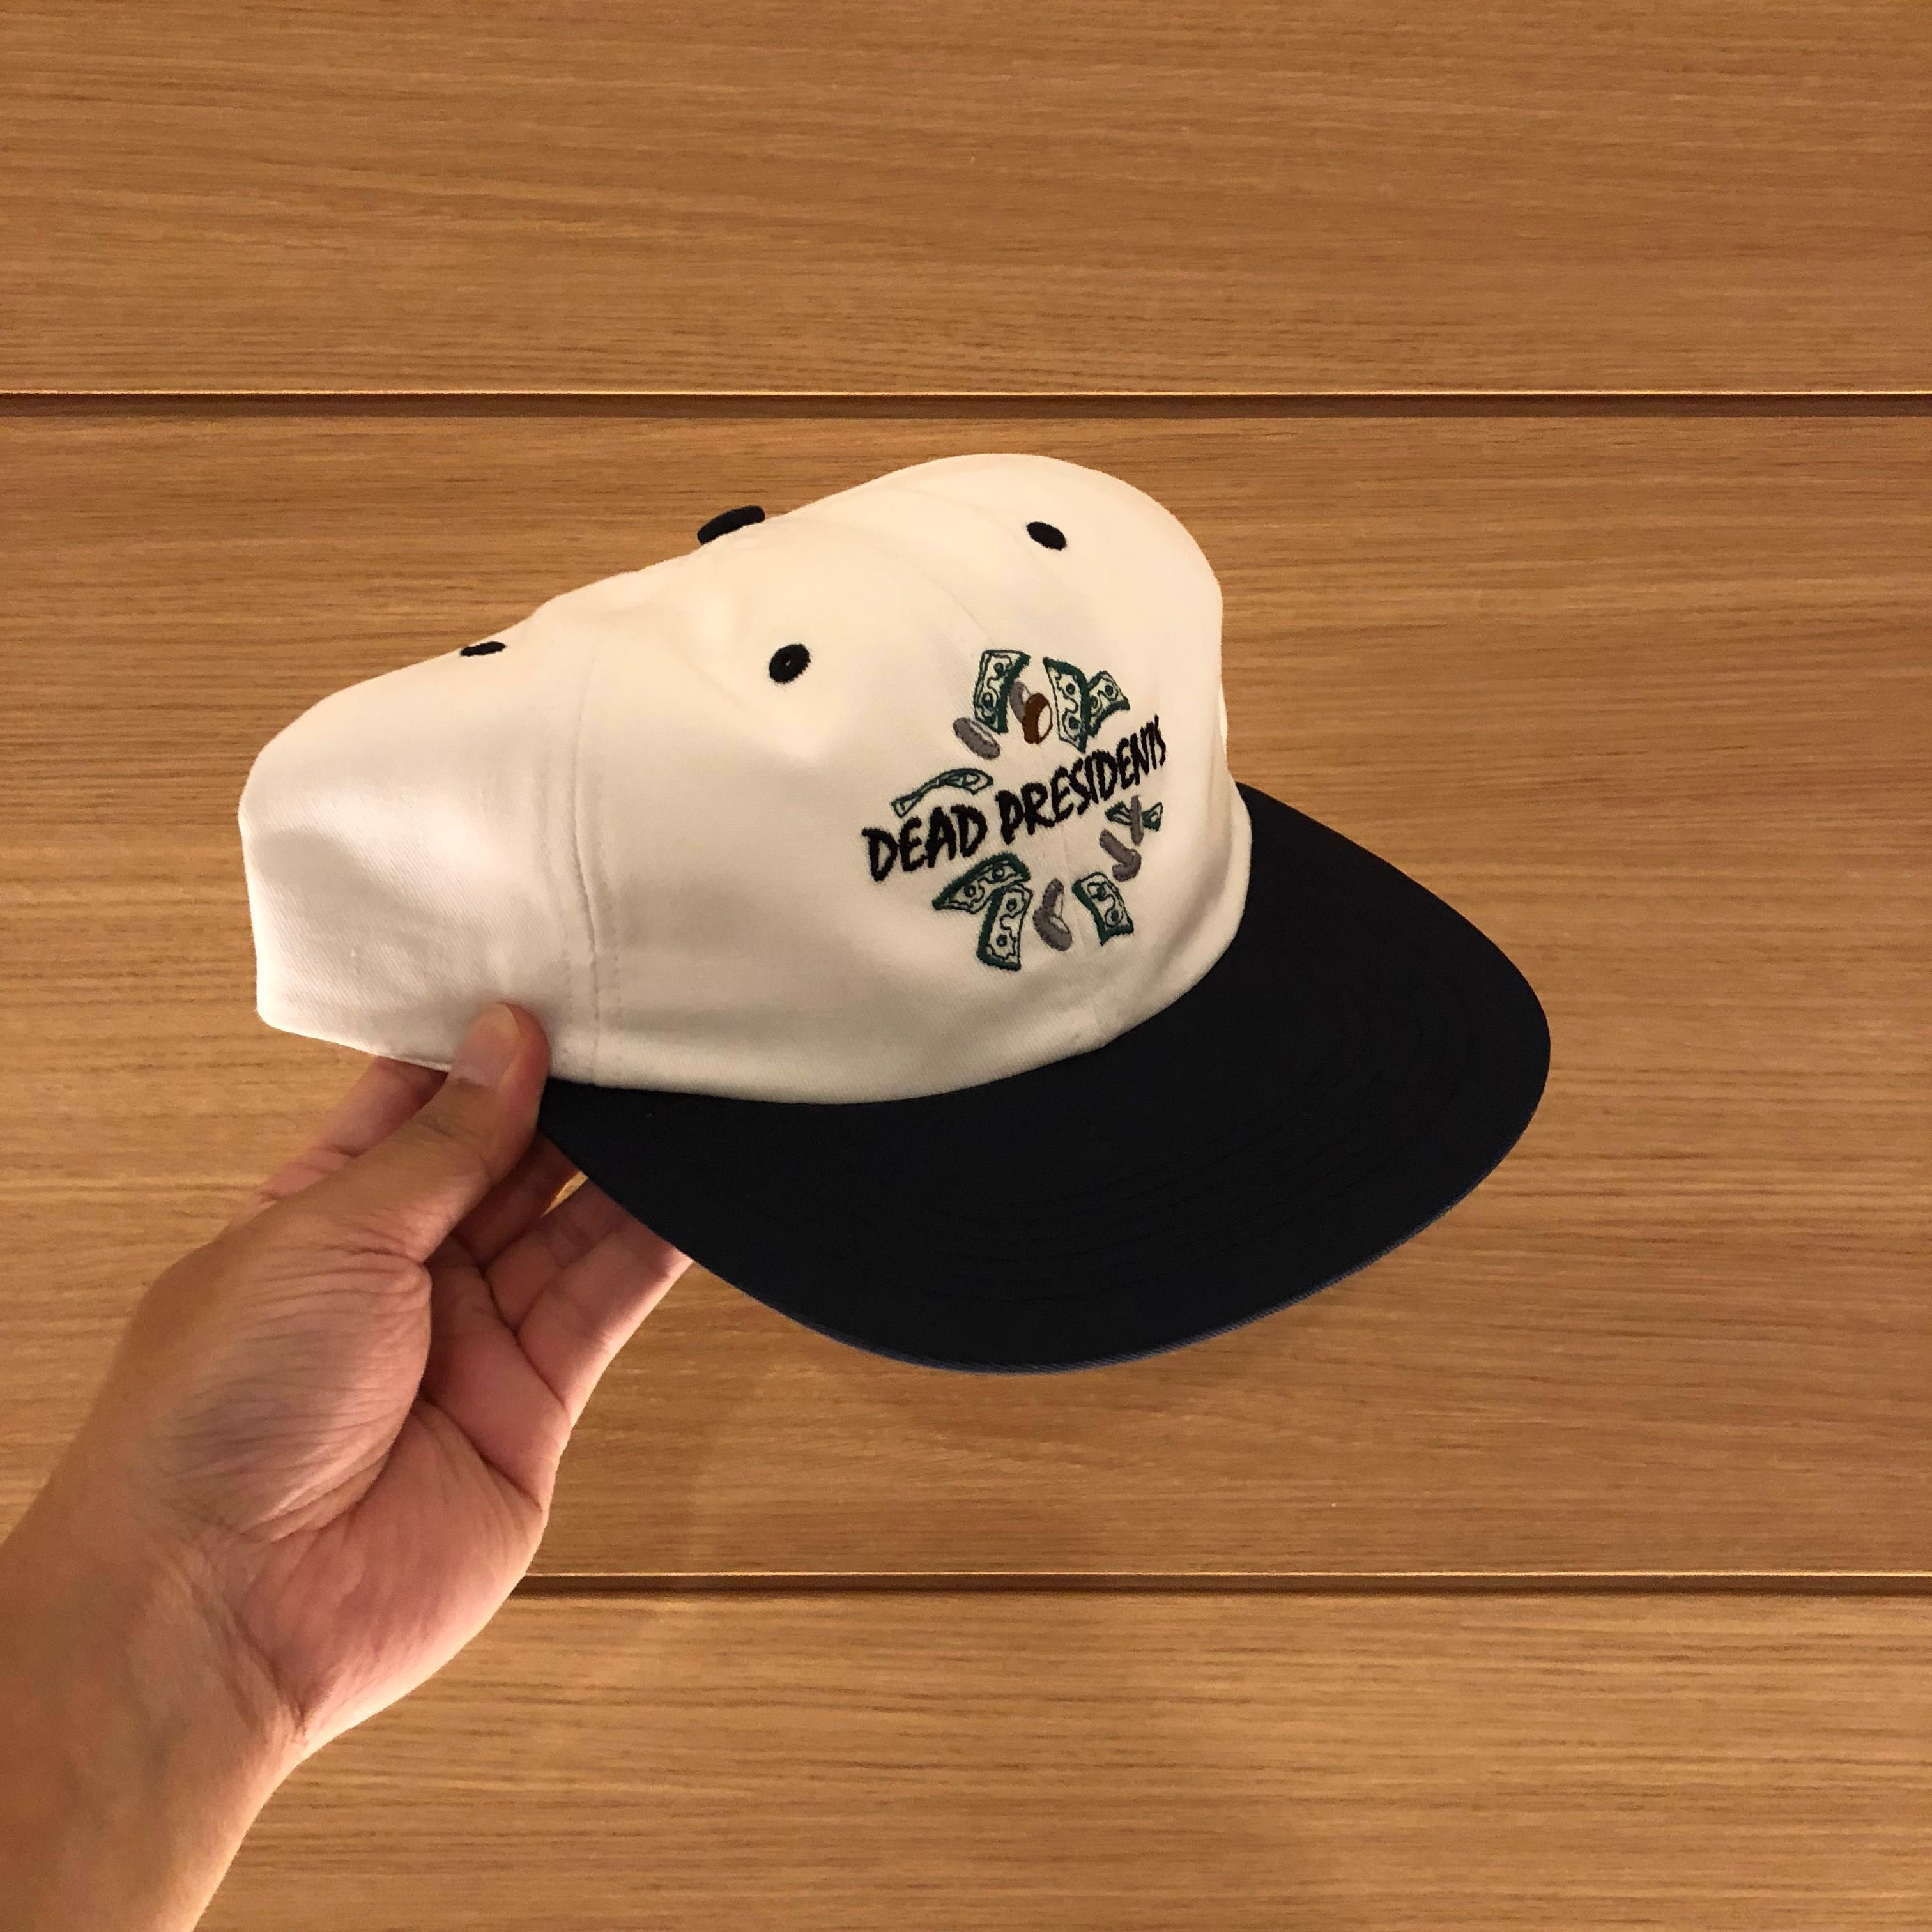 c9866a4e Supreme Dead Presidents 6-Panel Hat Navy FW18, Men's Fashion ...